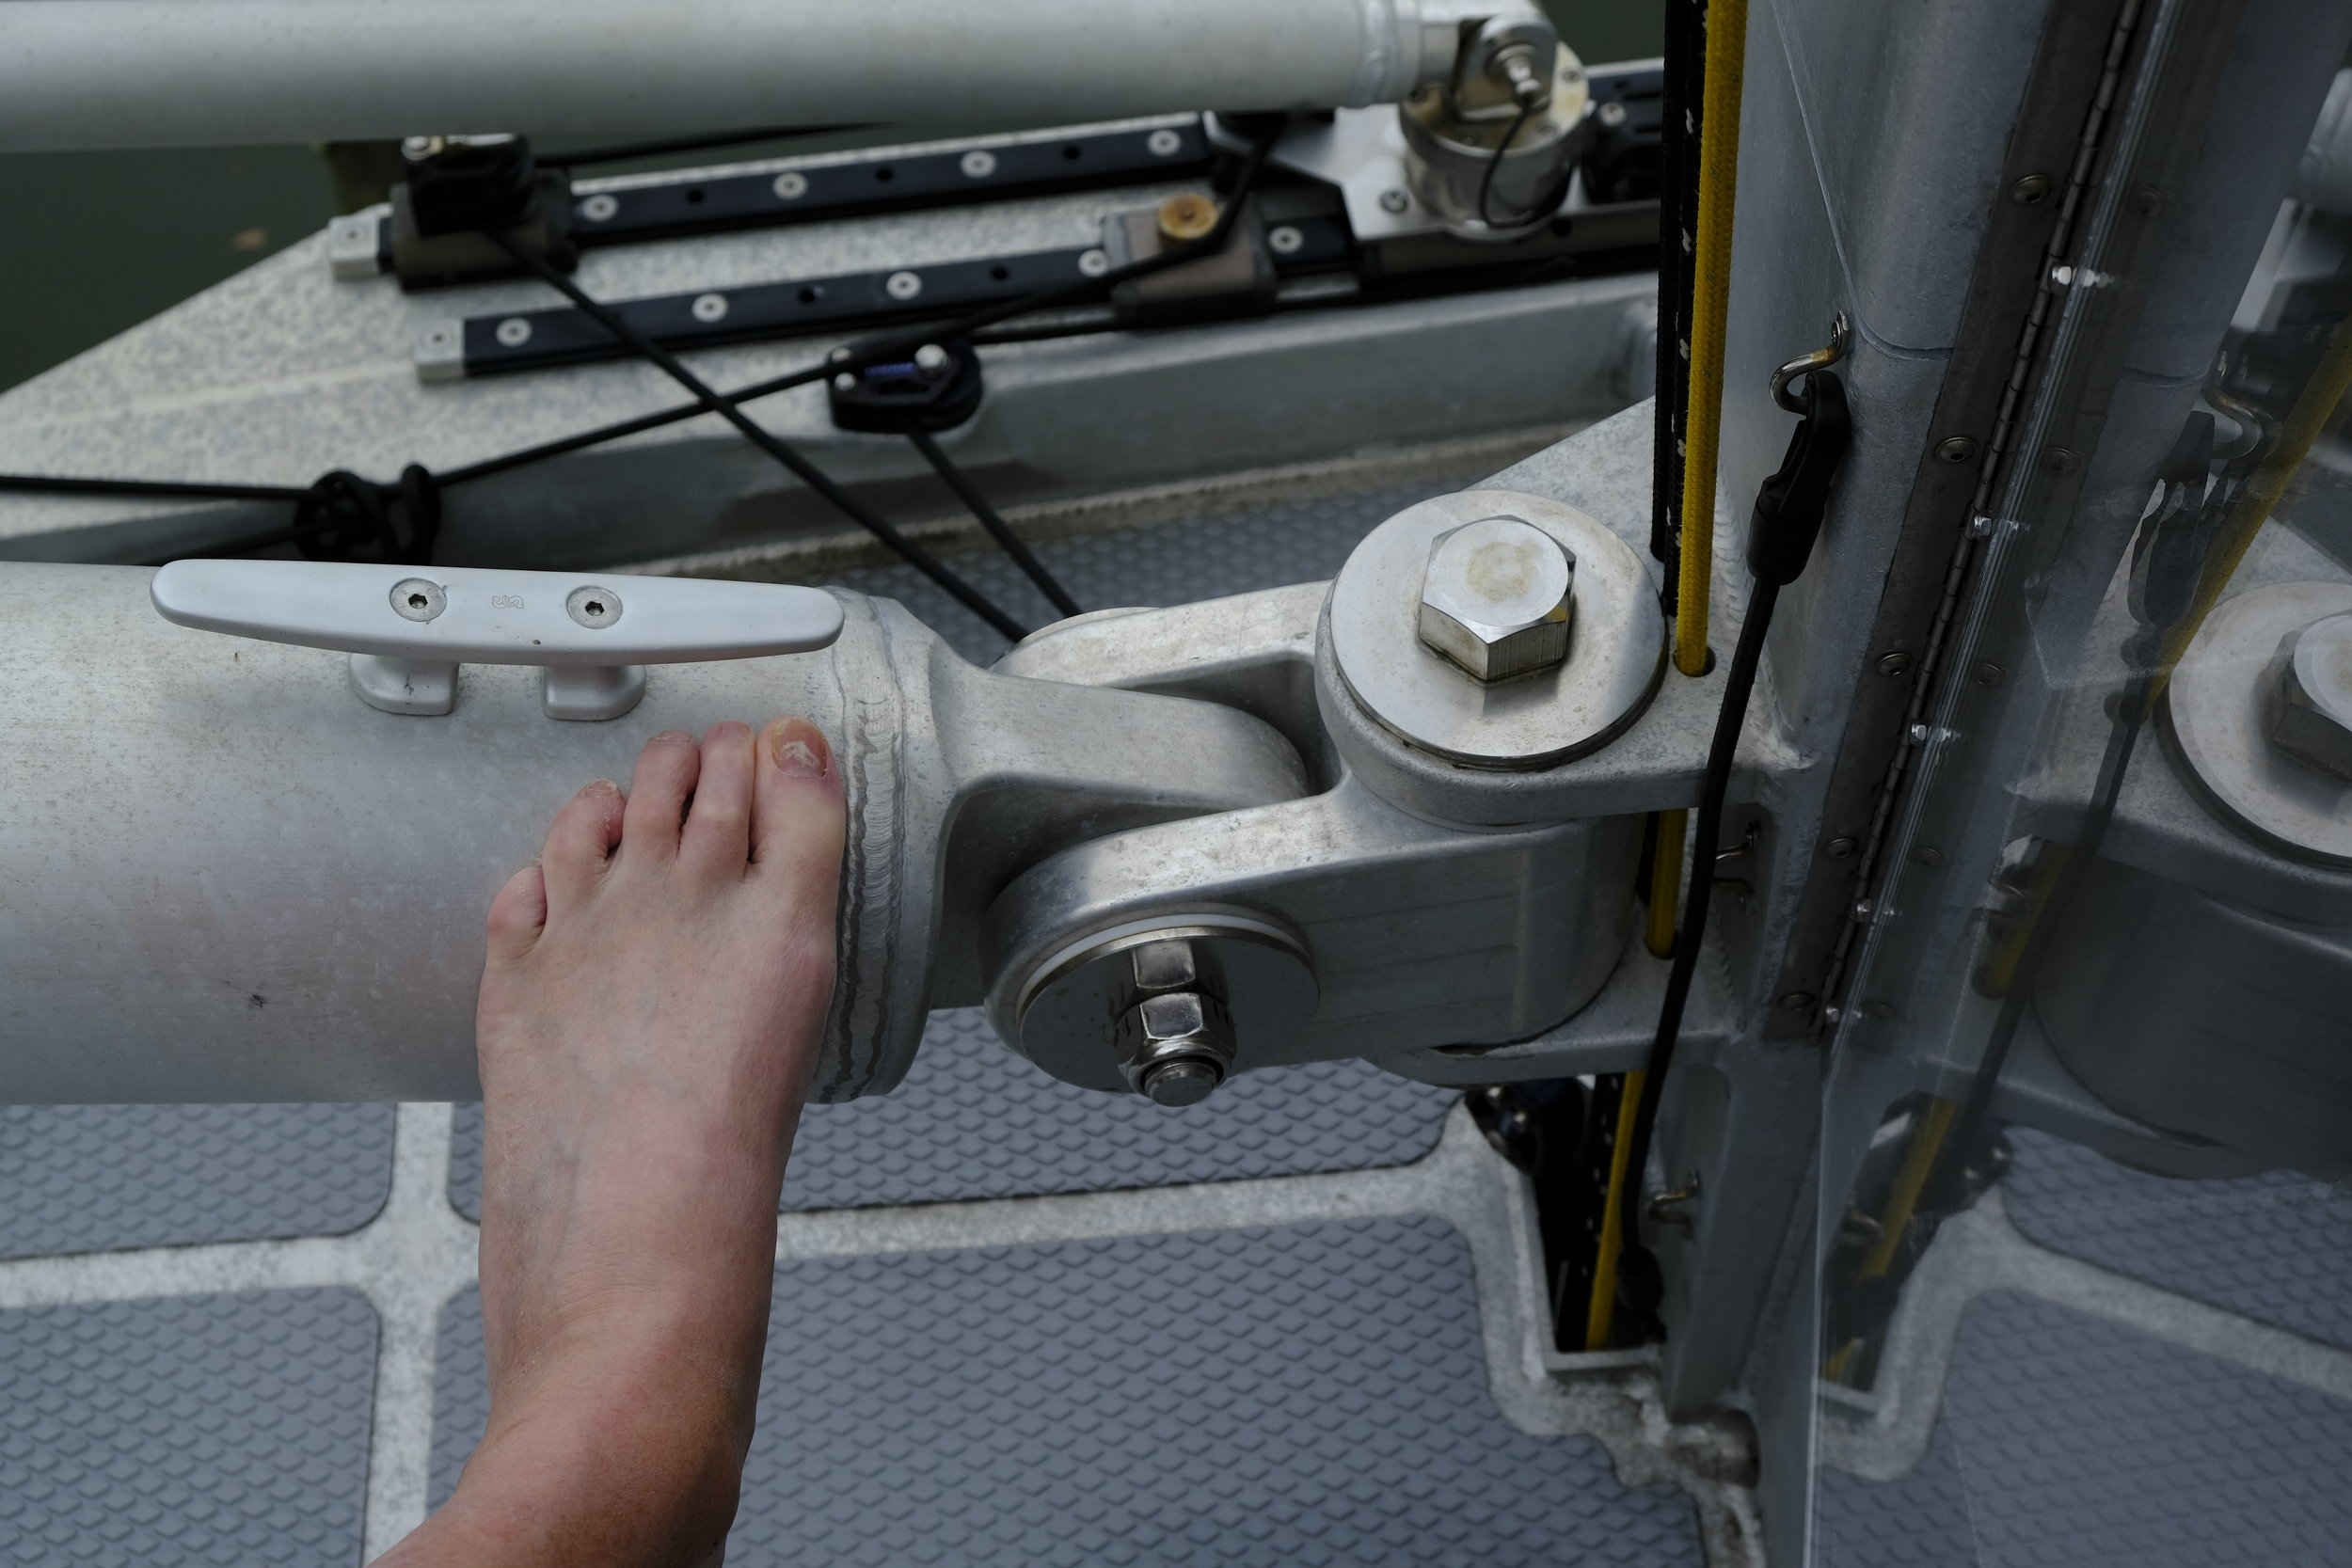 My size 13 foot gives you an idea of the massive construction of equipment on this boat. Everything is over sized to handle any sea condition.